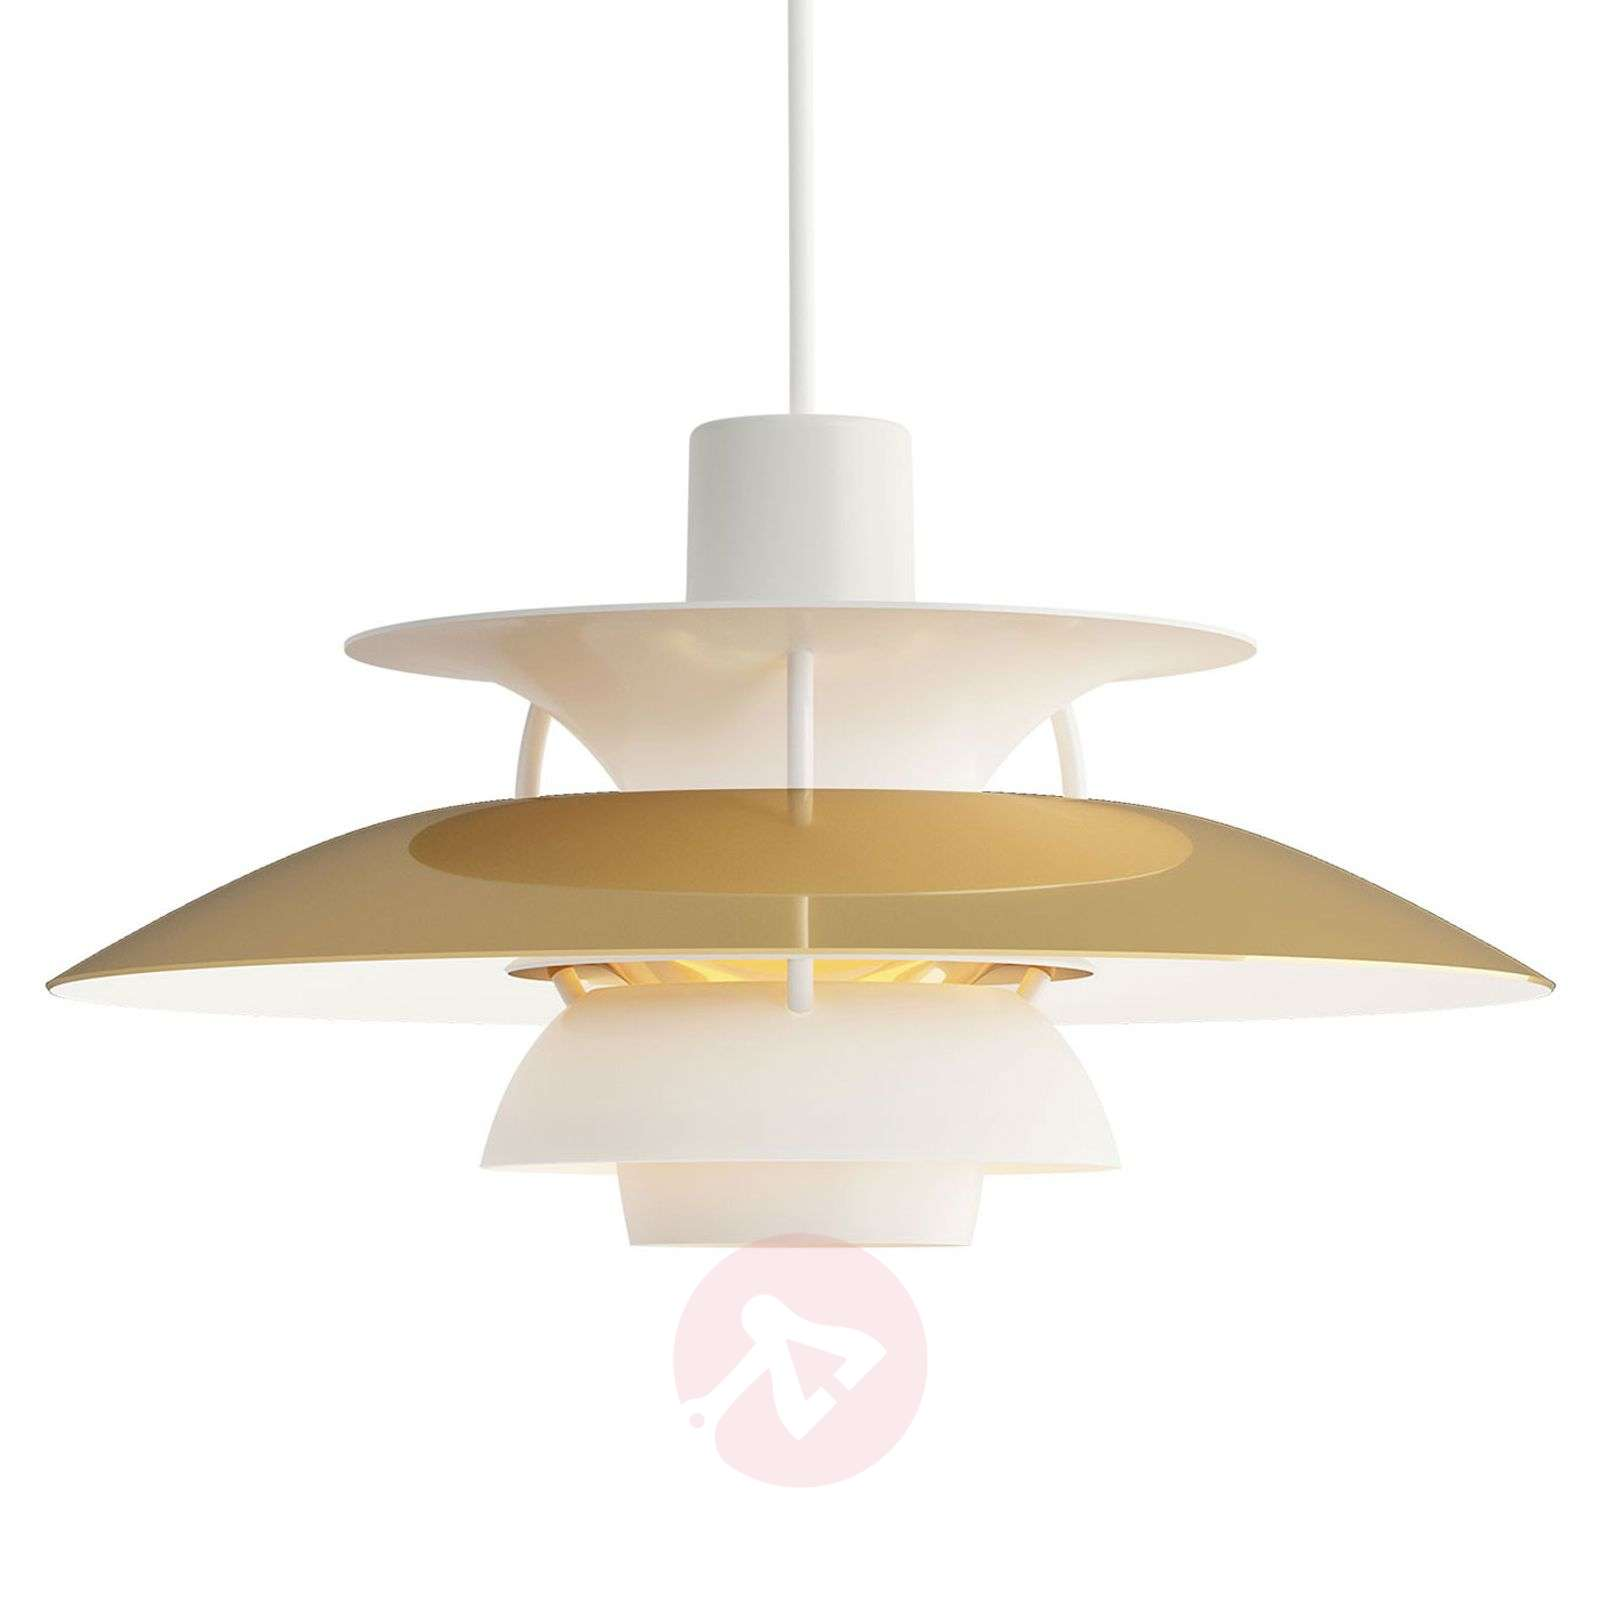 Louis Poulsen PH 5 laiton suspension Ø 50 cm-6090200-01